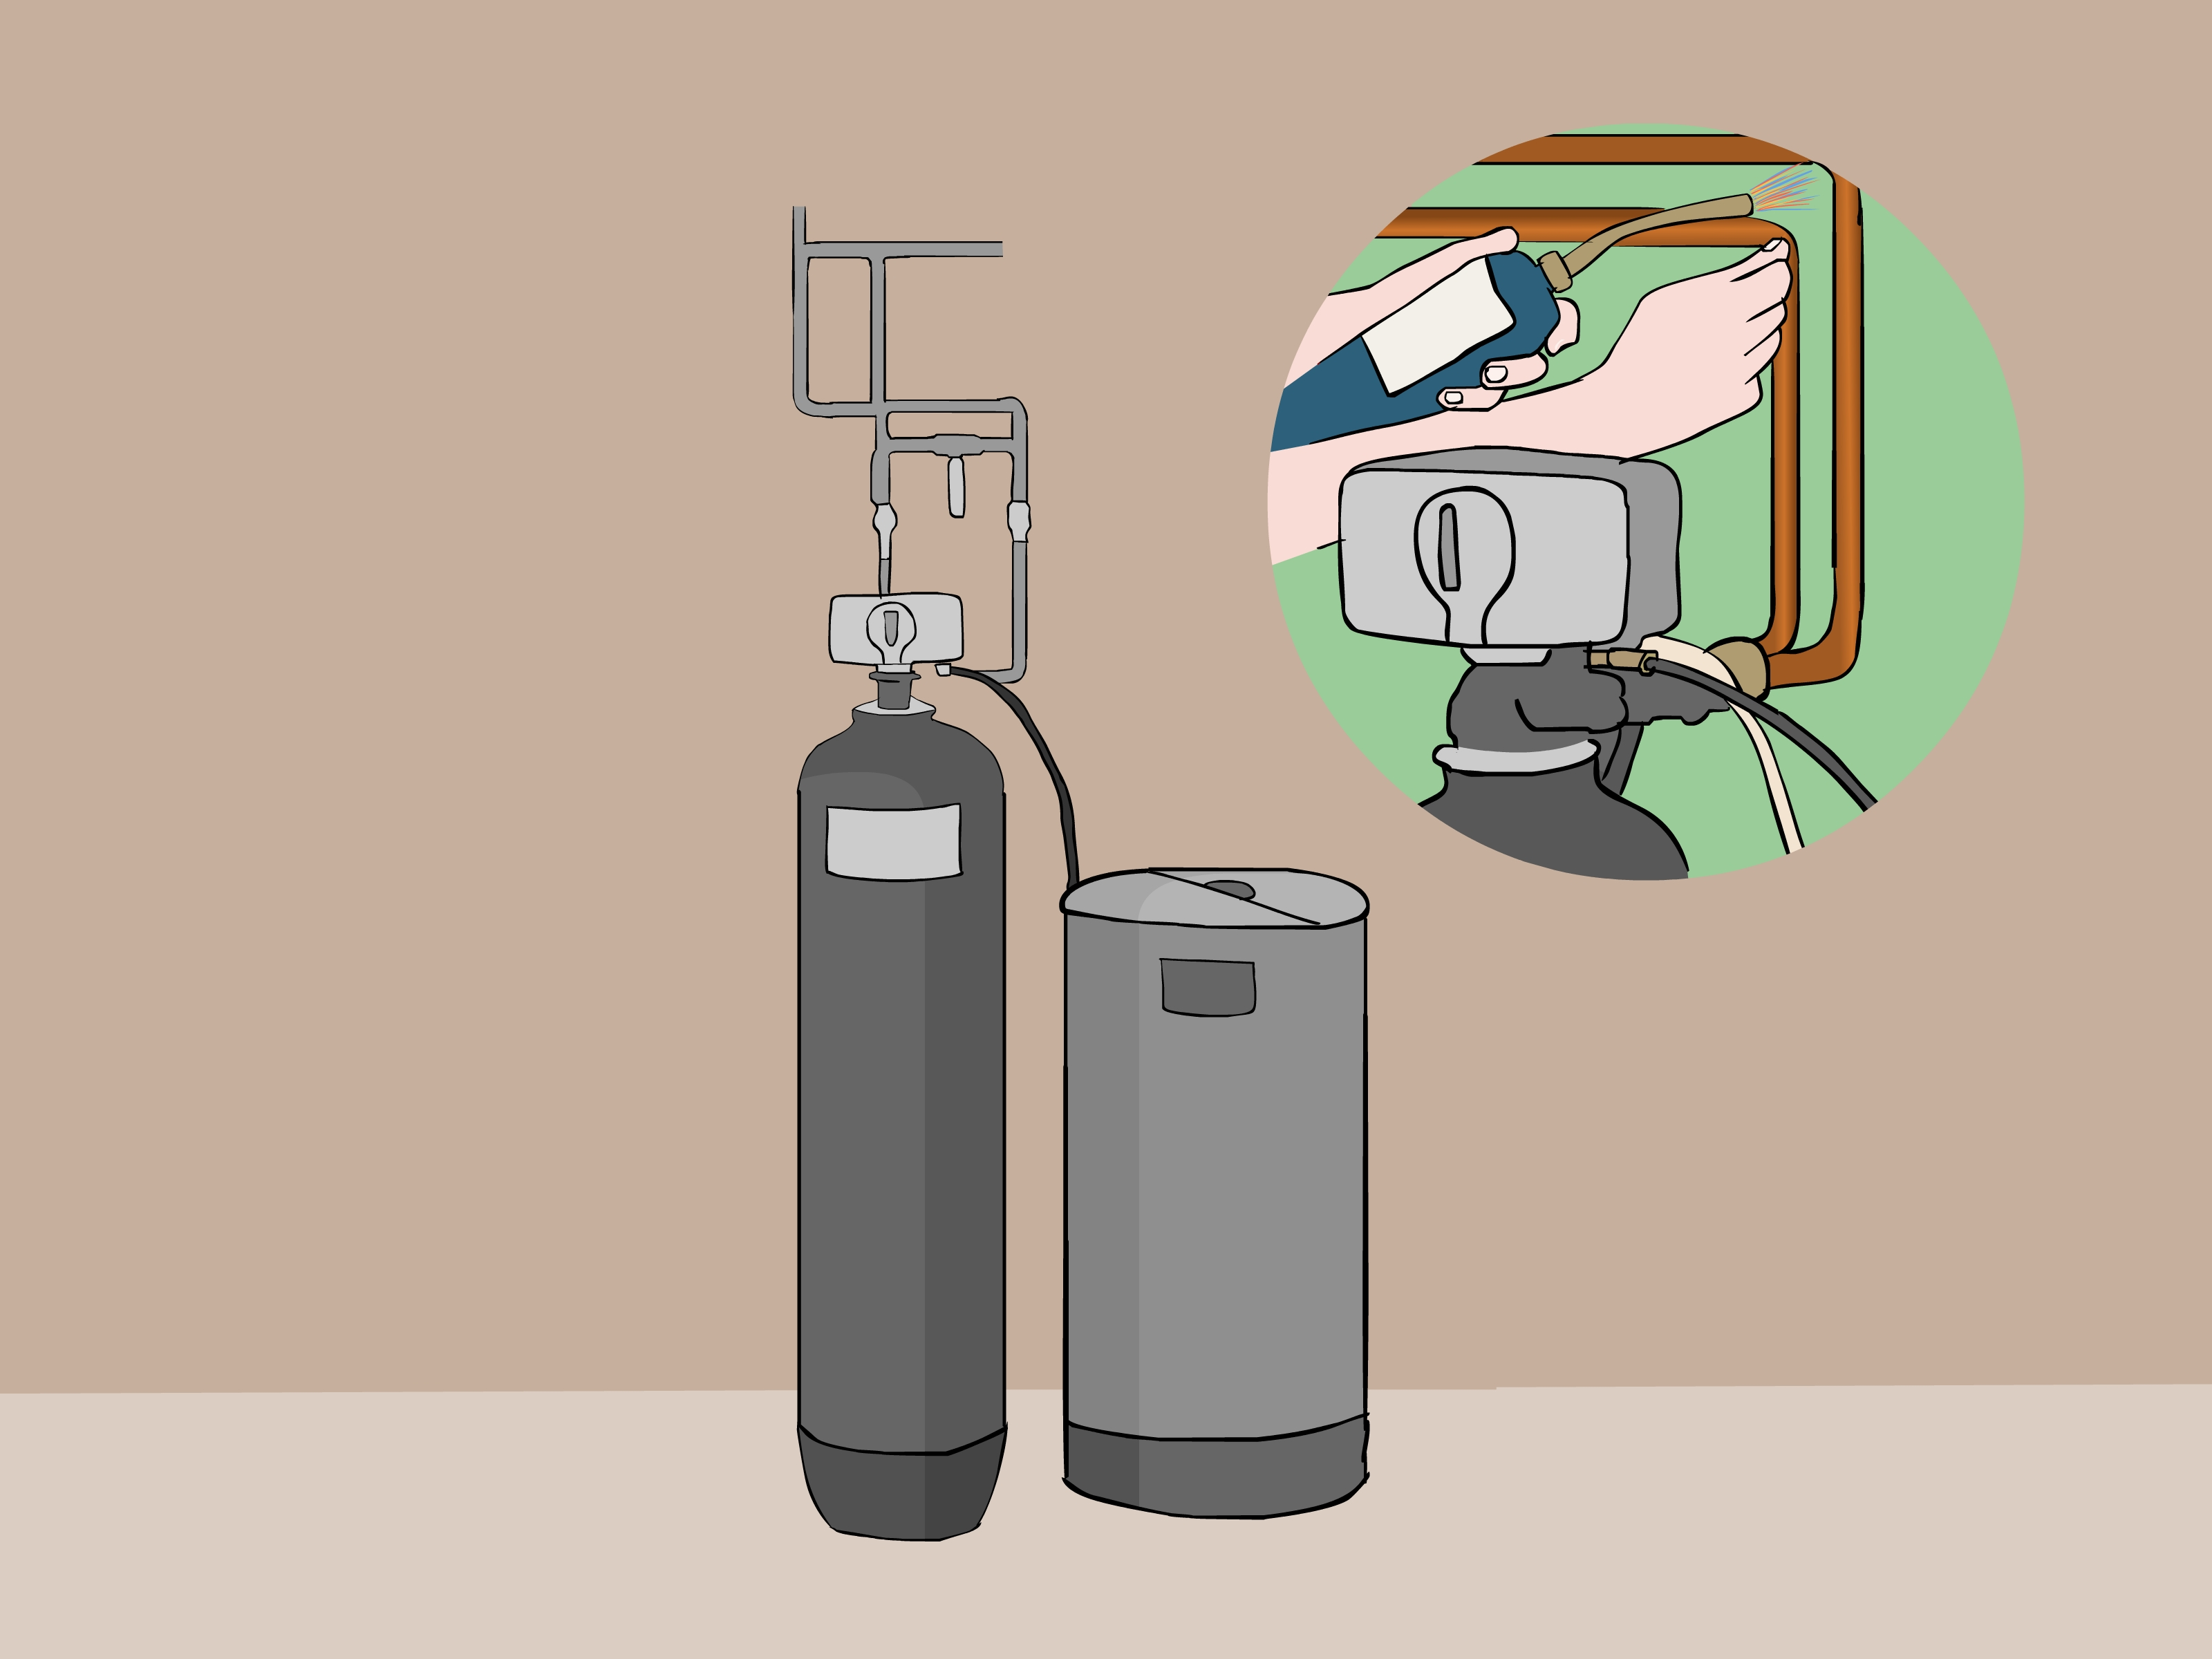 Dazzling How To Install A Water Softener Wikihow Water Softener Bypass Valve Gasket Water Softener Bypass Valve Menards houzz-02 Water Softener Bypass Valve